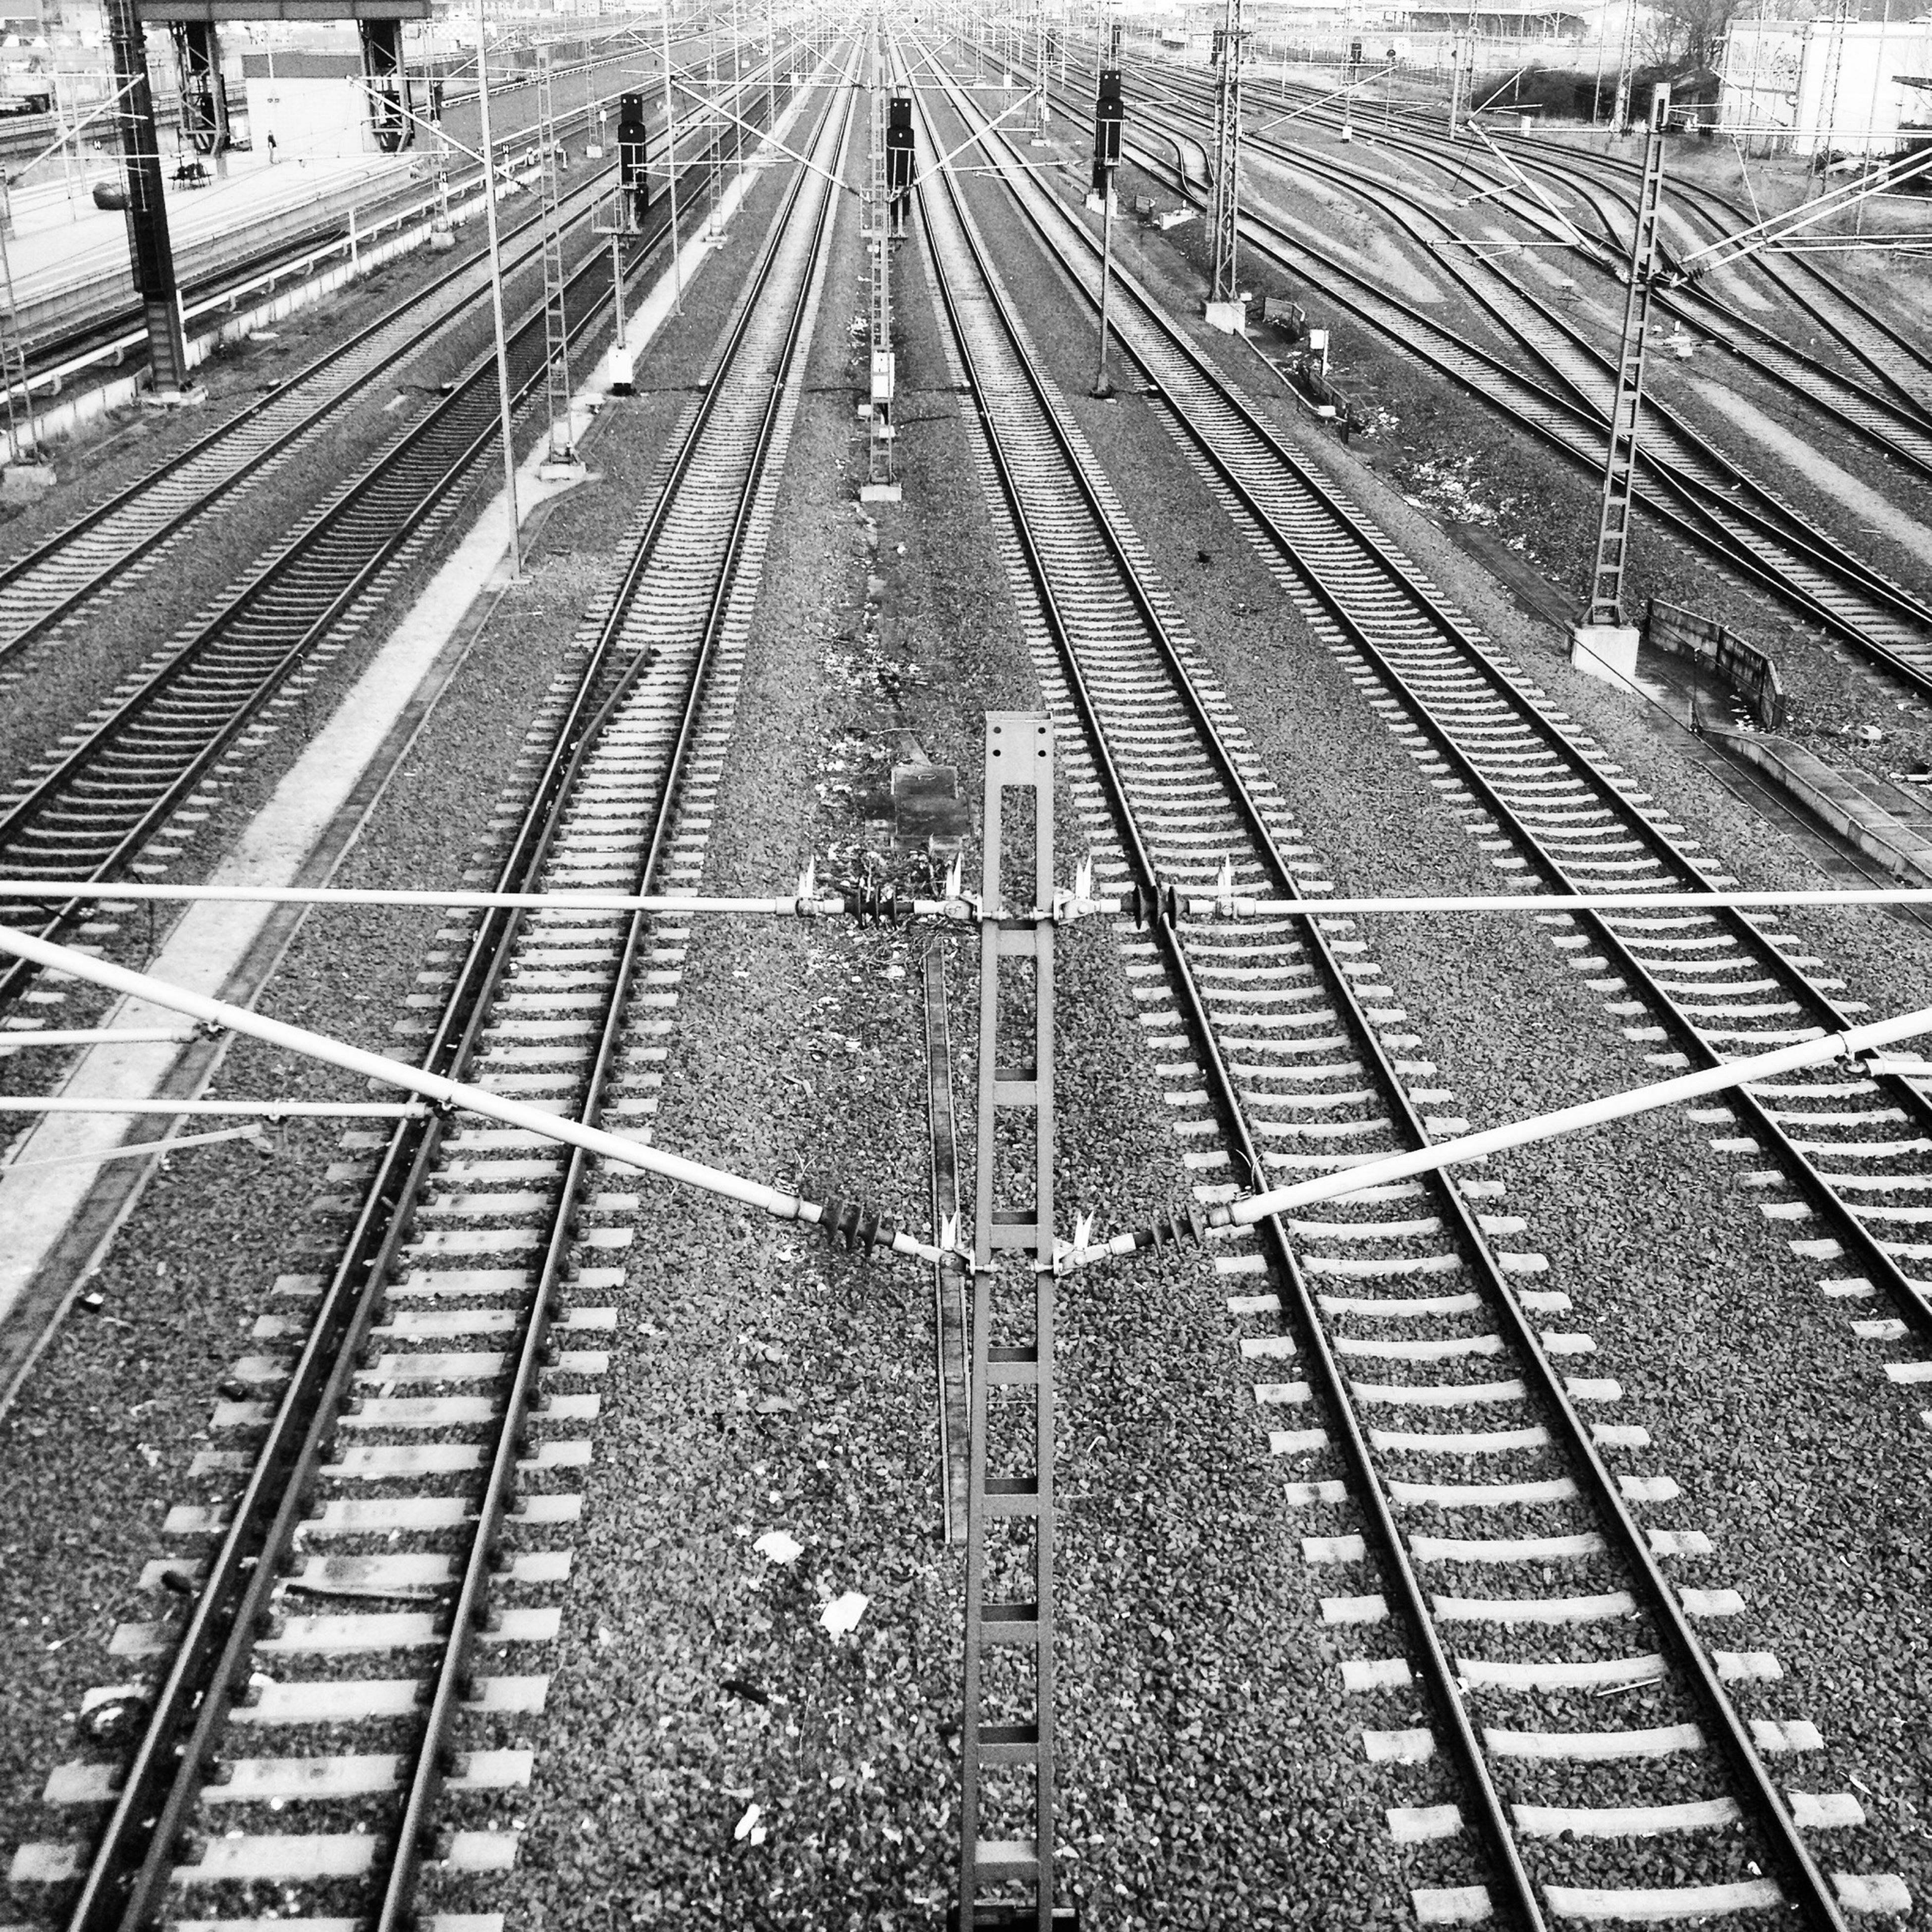 railroad track, transportation, rail transportation, diminishing perspective, the way forward, vanishing point, high angle view, public transportation, railroad station, railroad station platform, railway track, travel, built structure, day, straight, outdoors, architecture, city, mode of transport, train track